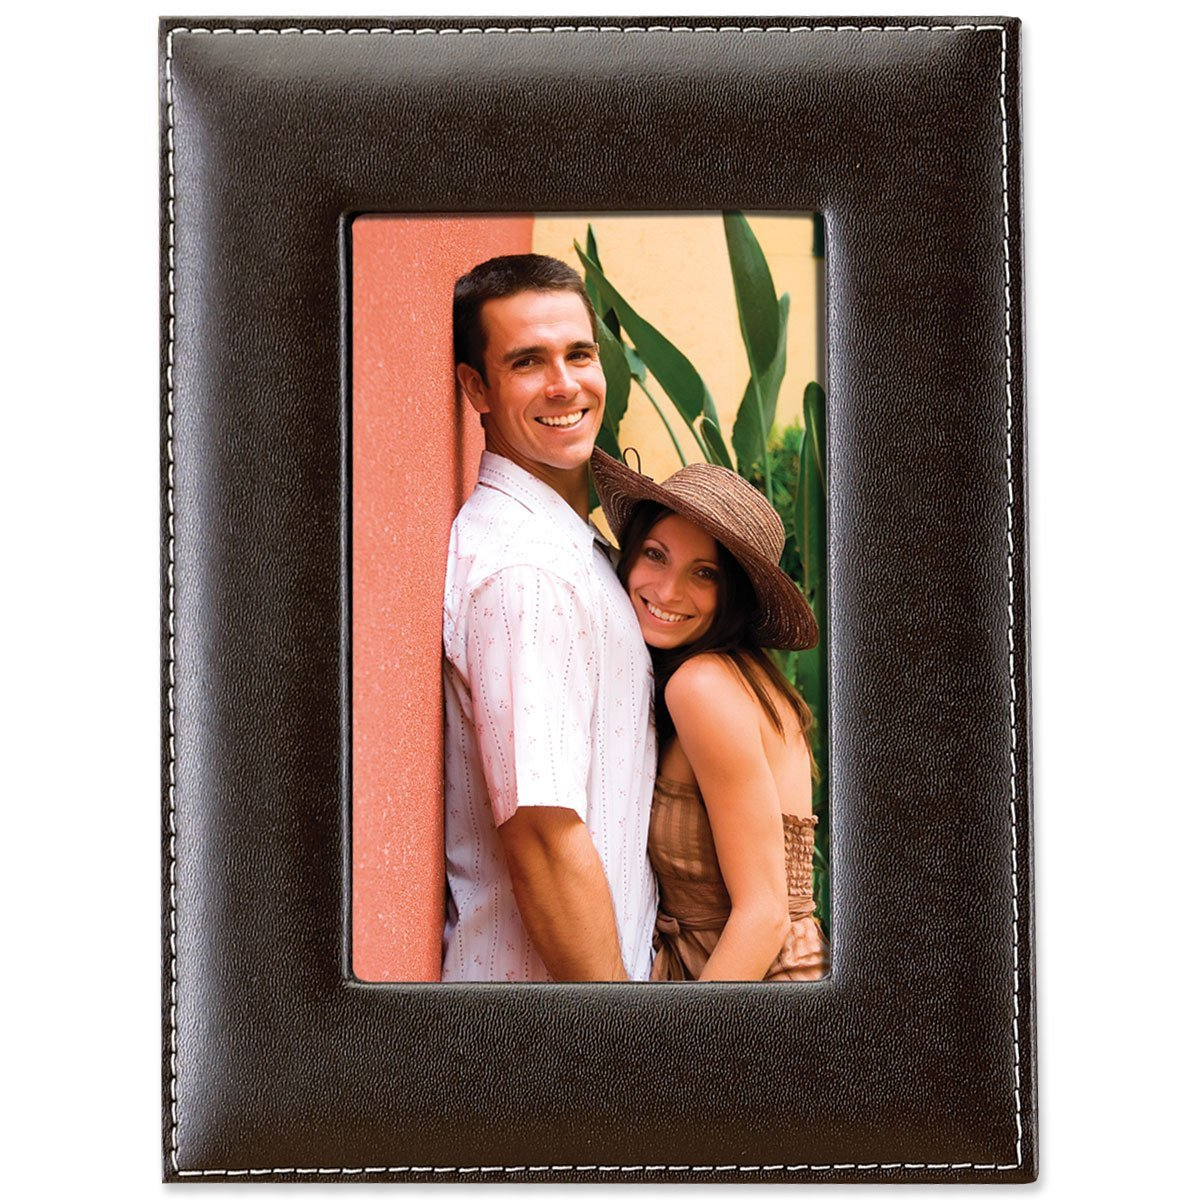 5X7 Saddle Stitched Bonded Leather Picture Frame